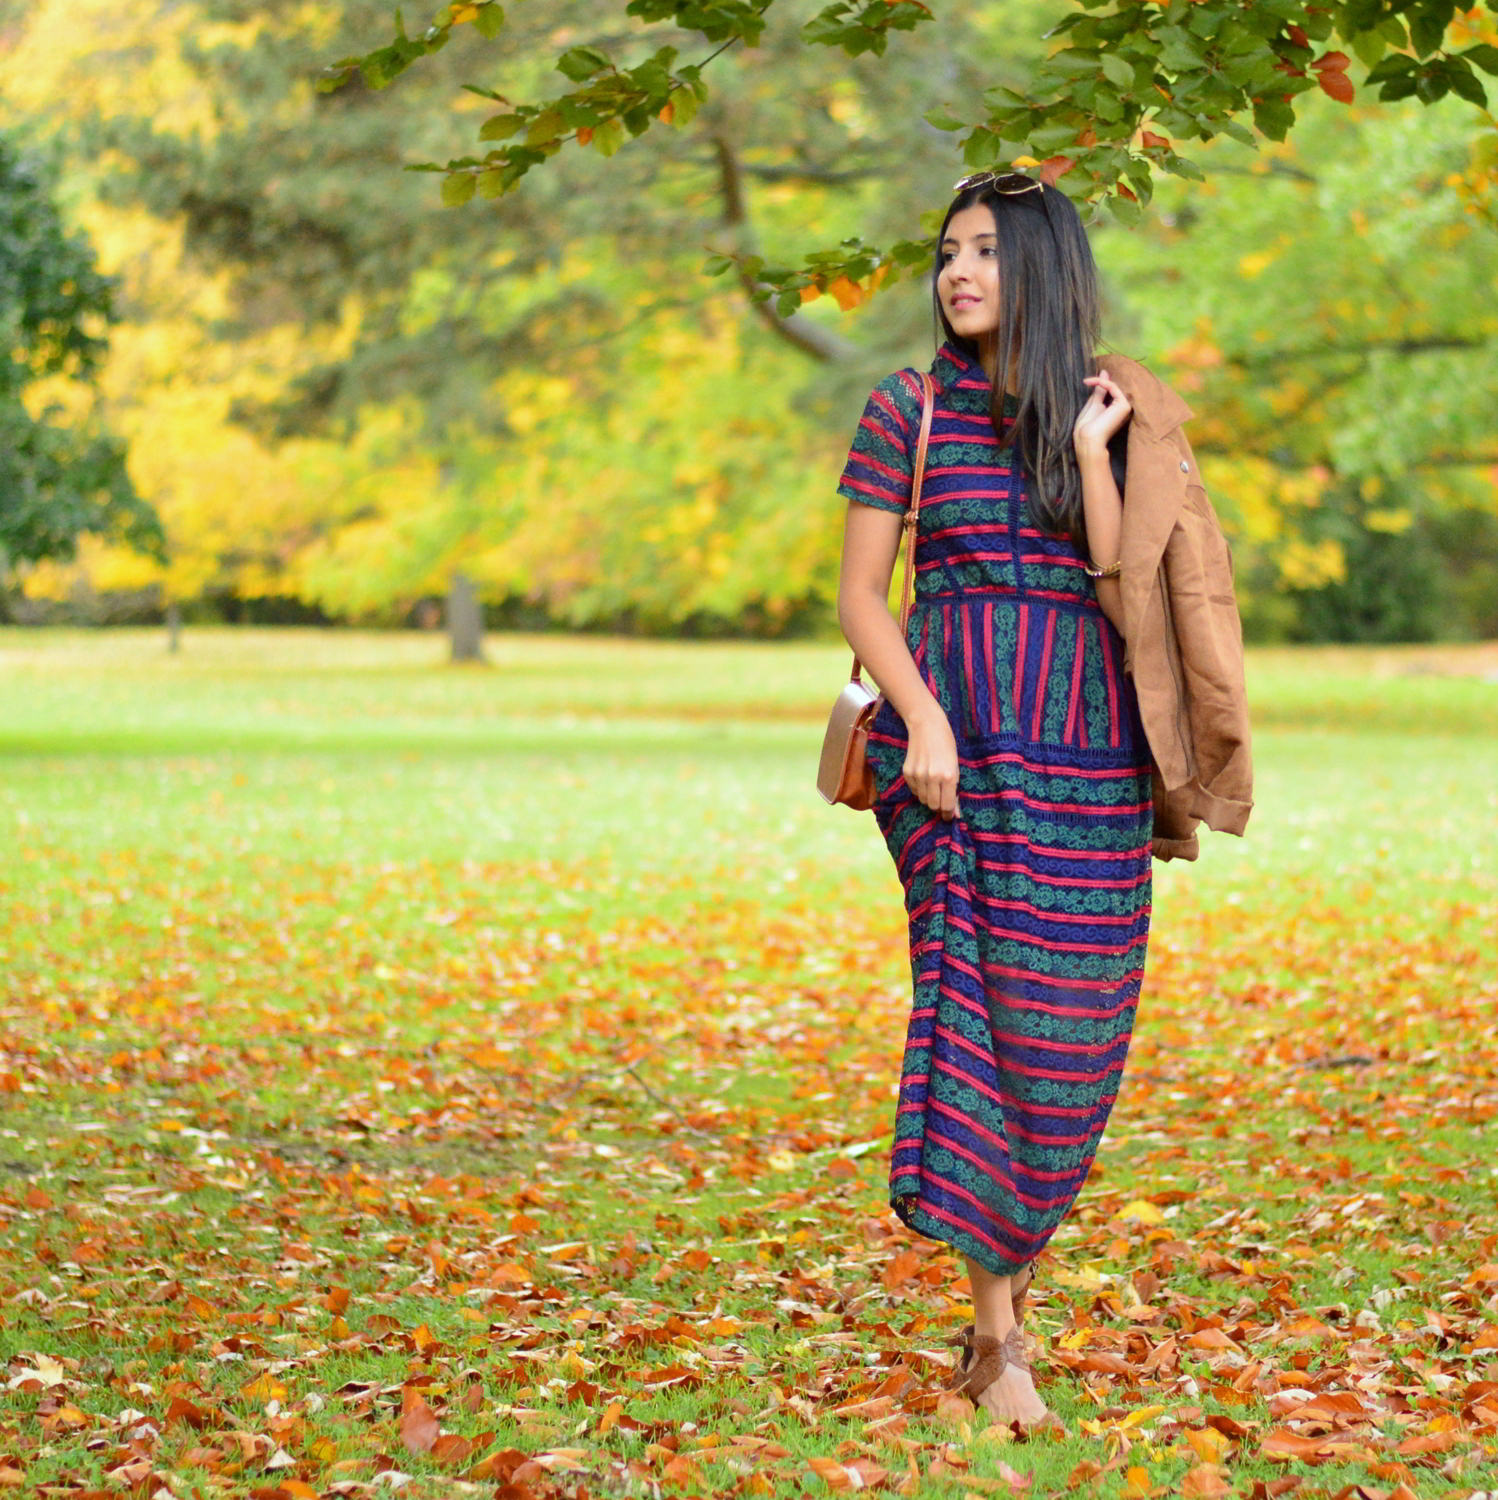 lace-multicolored-maxi-dress-suede-jacket-fall-style-blogger-outfit 1